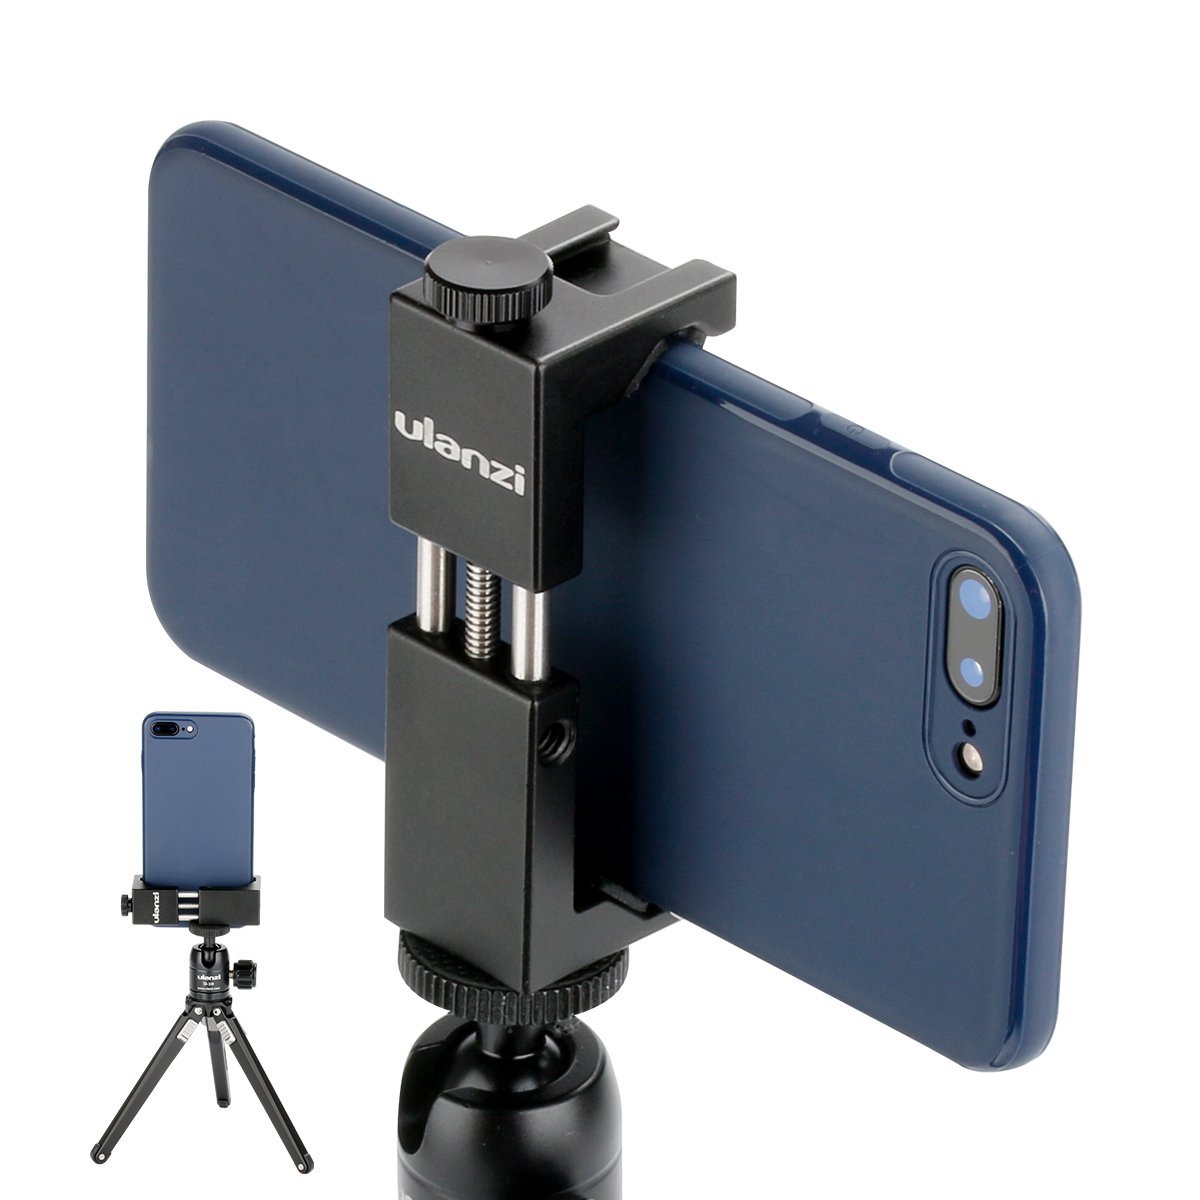 Ulanzi ST-02S Newest Aluminum Phone Tripod Mount w Cold Shoe Mount, Support Vertical and Horizontal, Universal Metal Adjustable Clamp for iPhone XS Xs Max X 8 7 Plus Samsung Huawei Android Smartphones by ULANZI